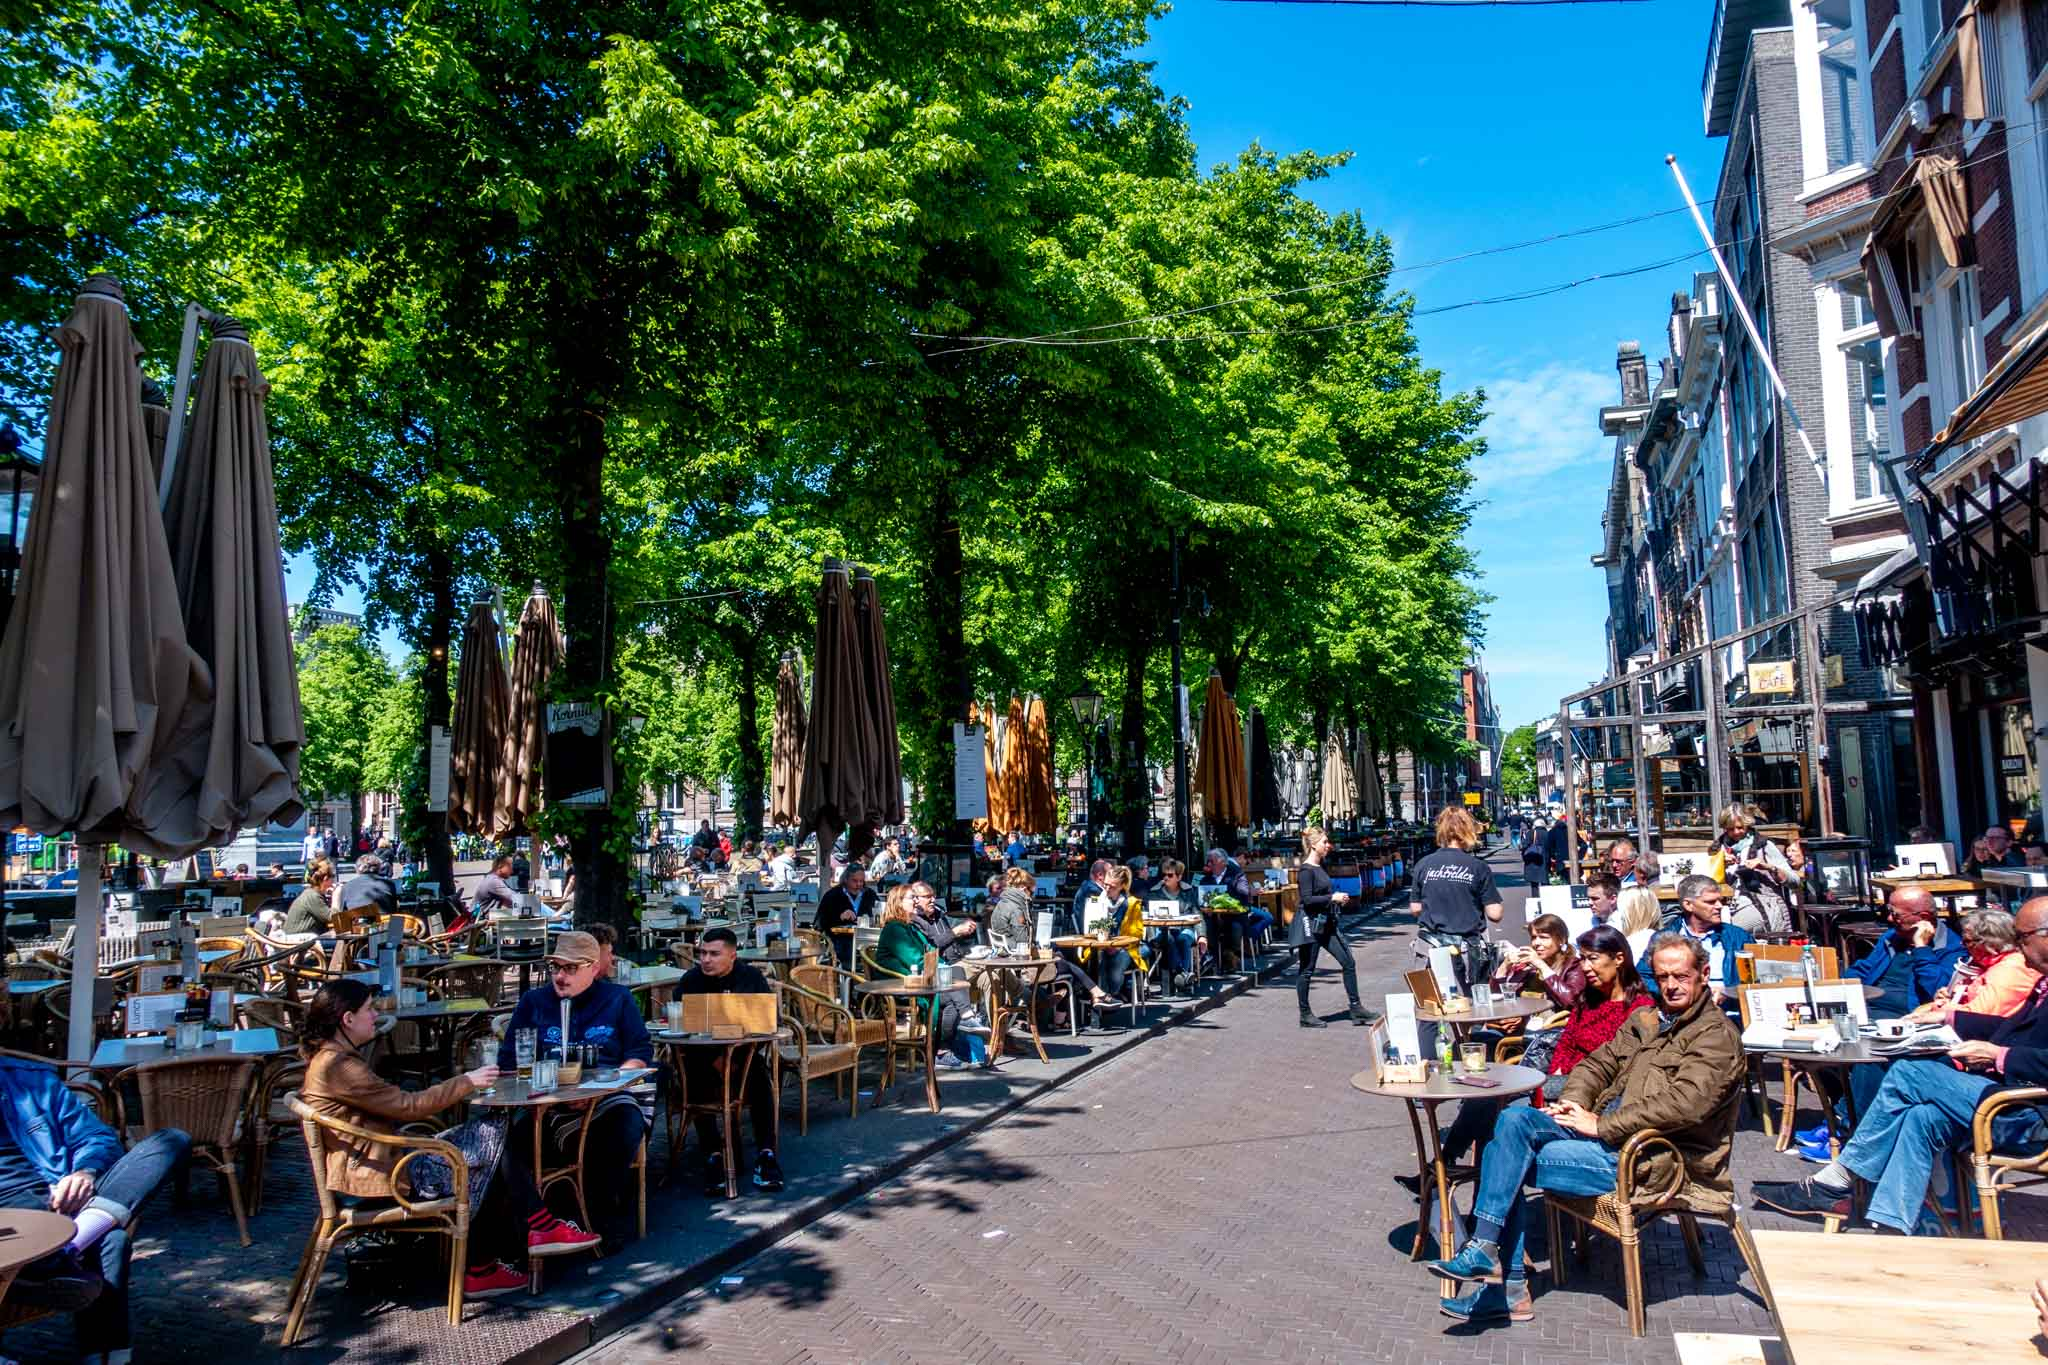 People at outdoor cafe on the tree-lined Plein square in The Hague